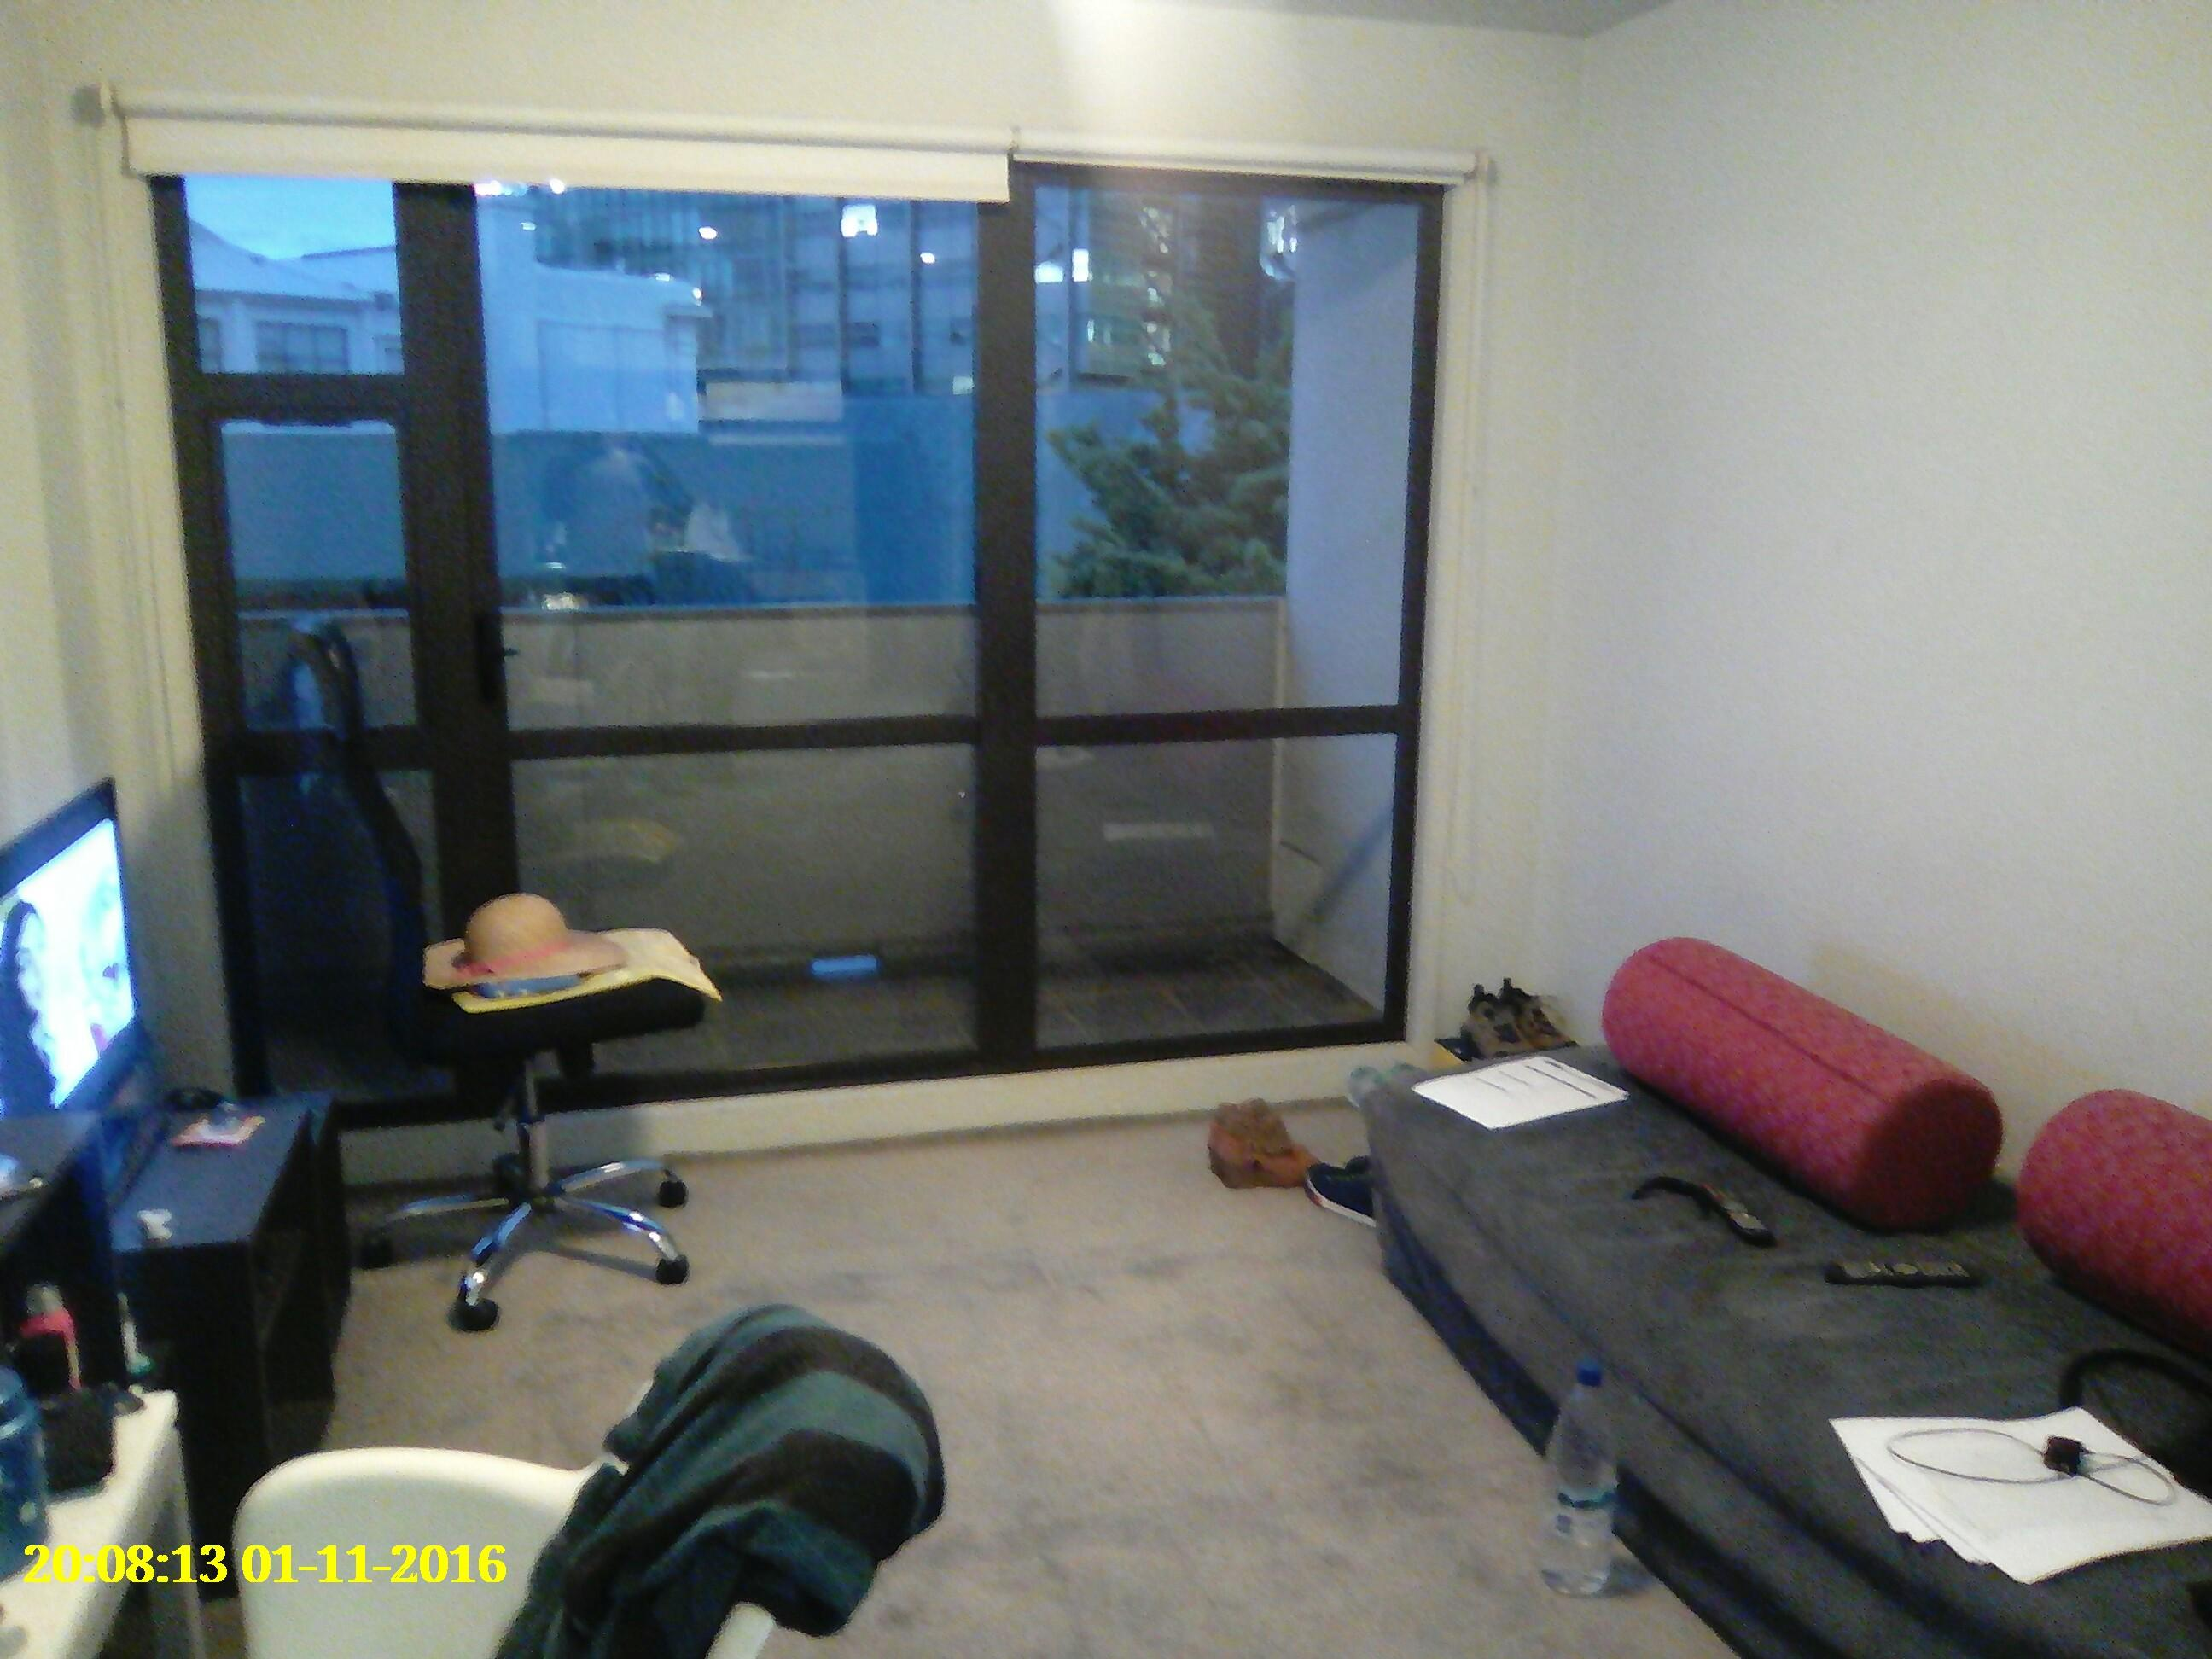 1Bedroom Hall Kitchen Balcony Apt on Short Term Rent in Auckland